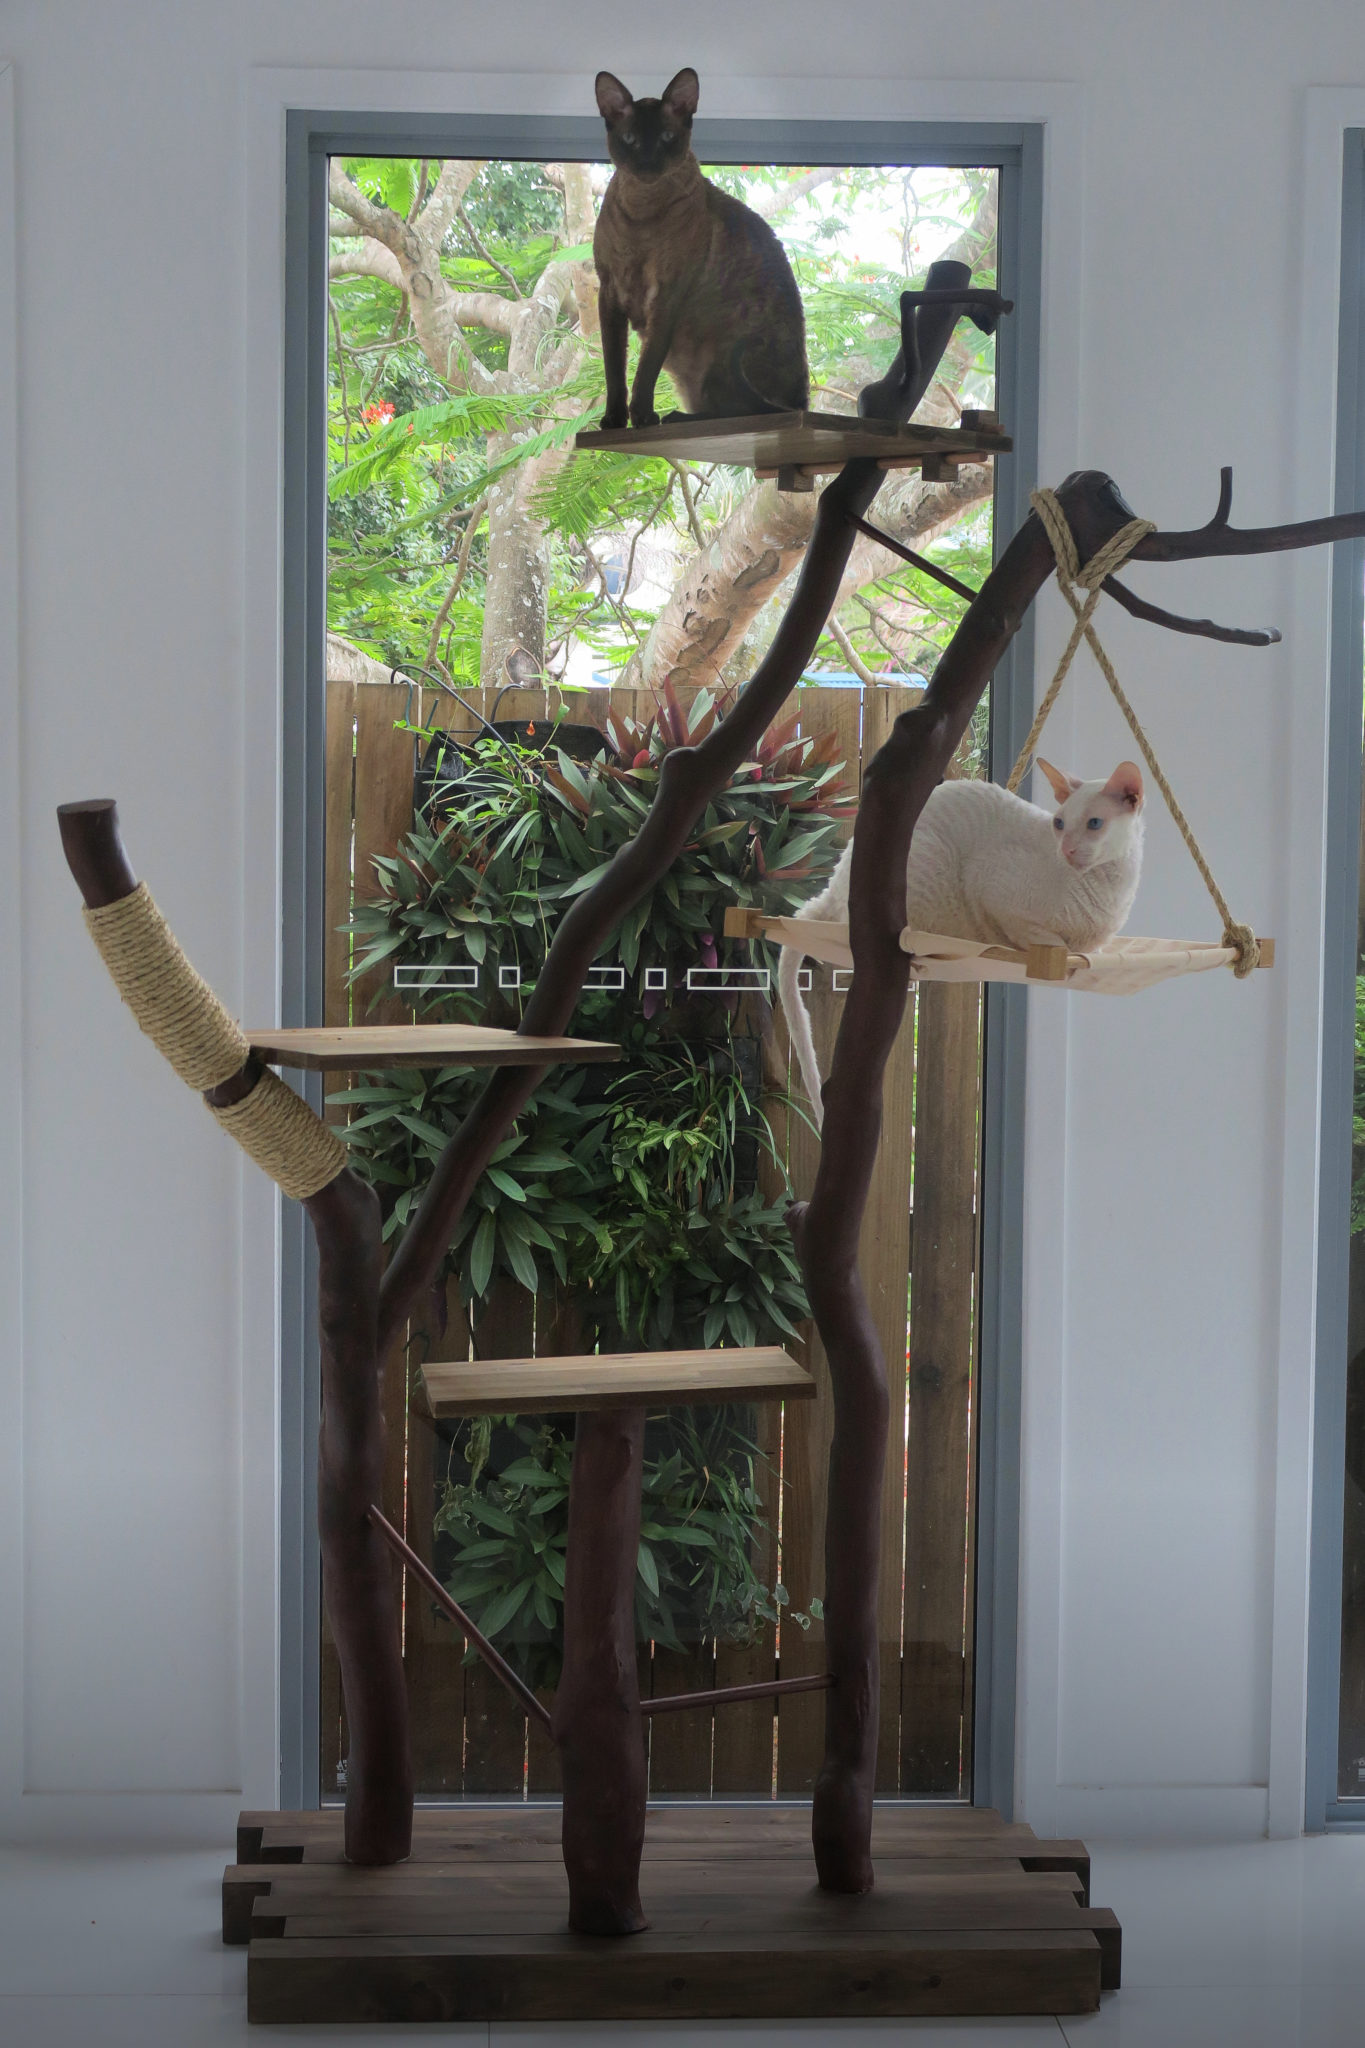 Gandalf and Radagast perch in their beautiful homemade cat tree made from native Australian wood